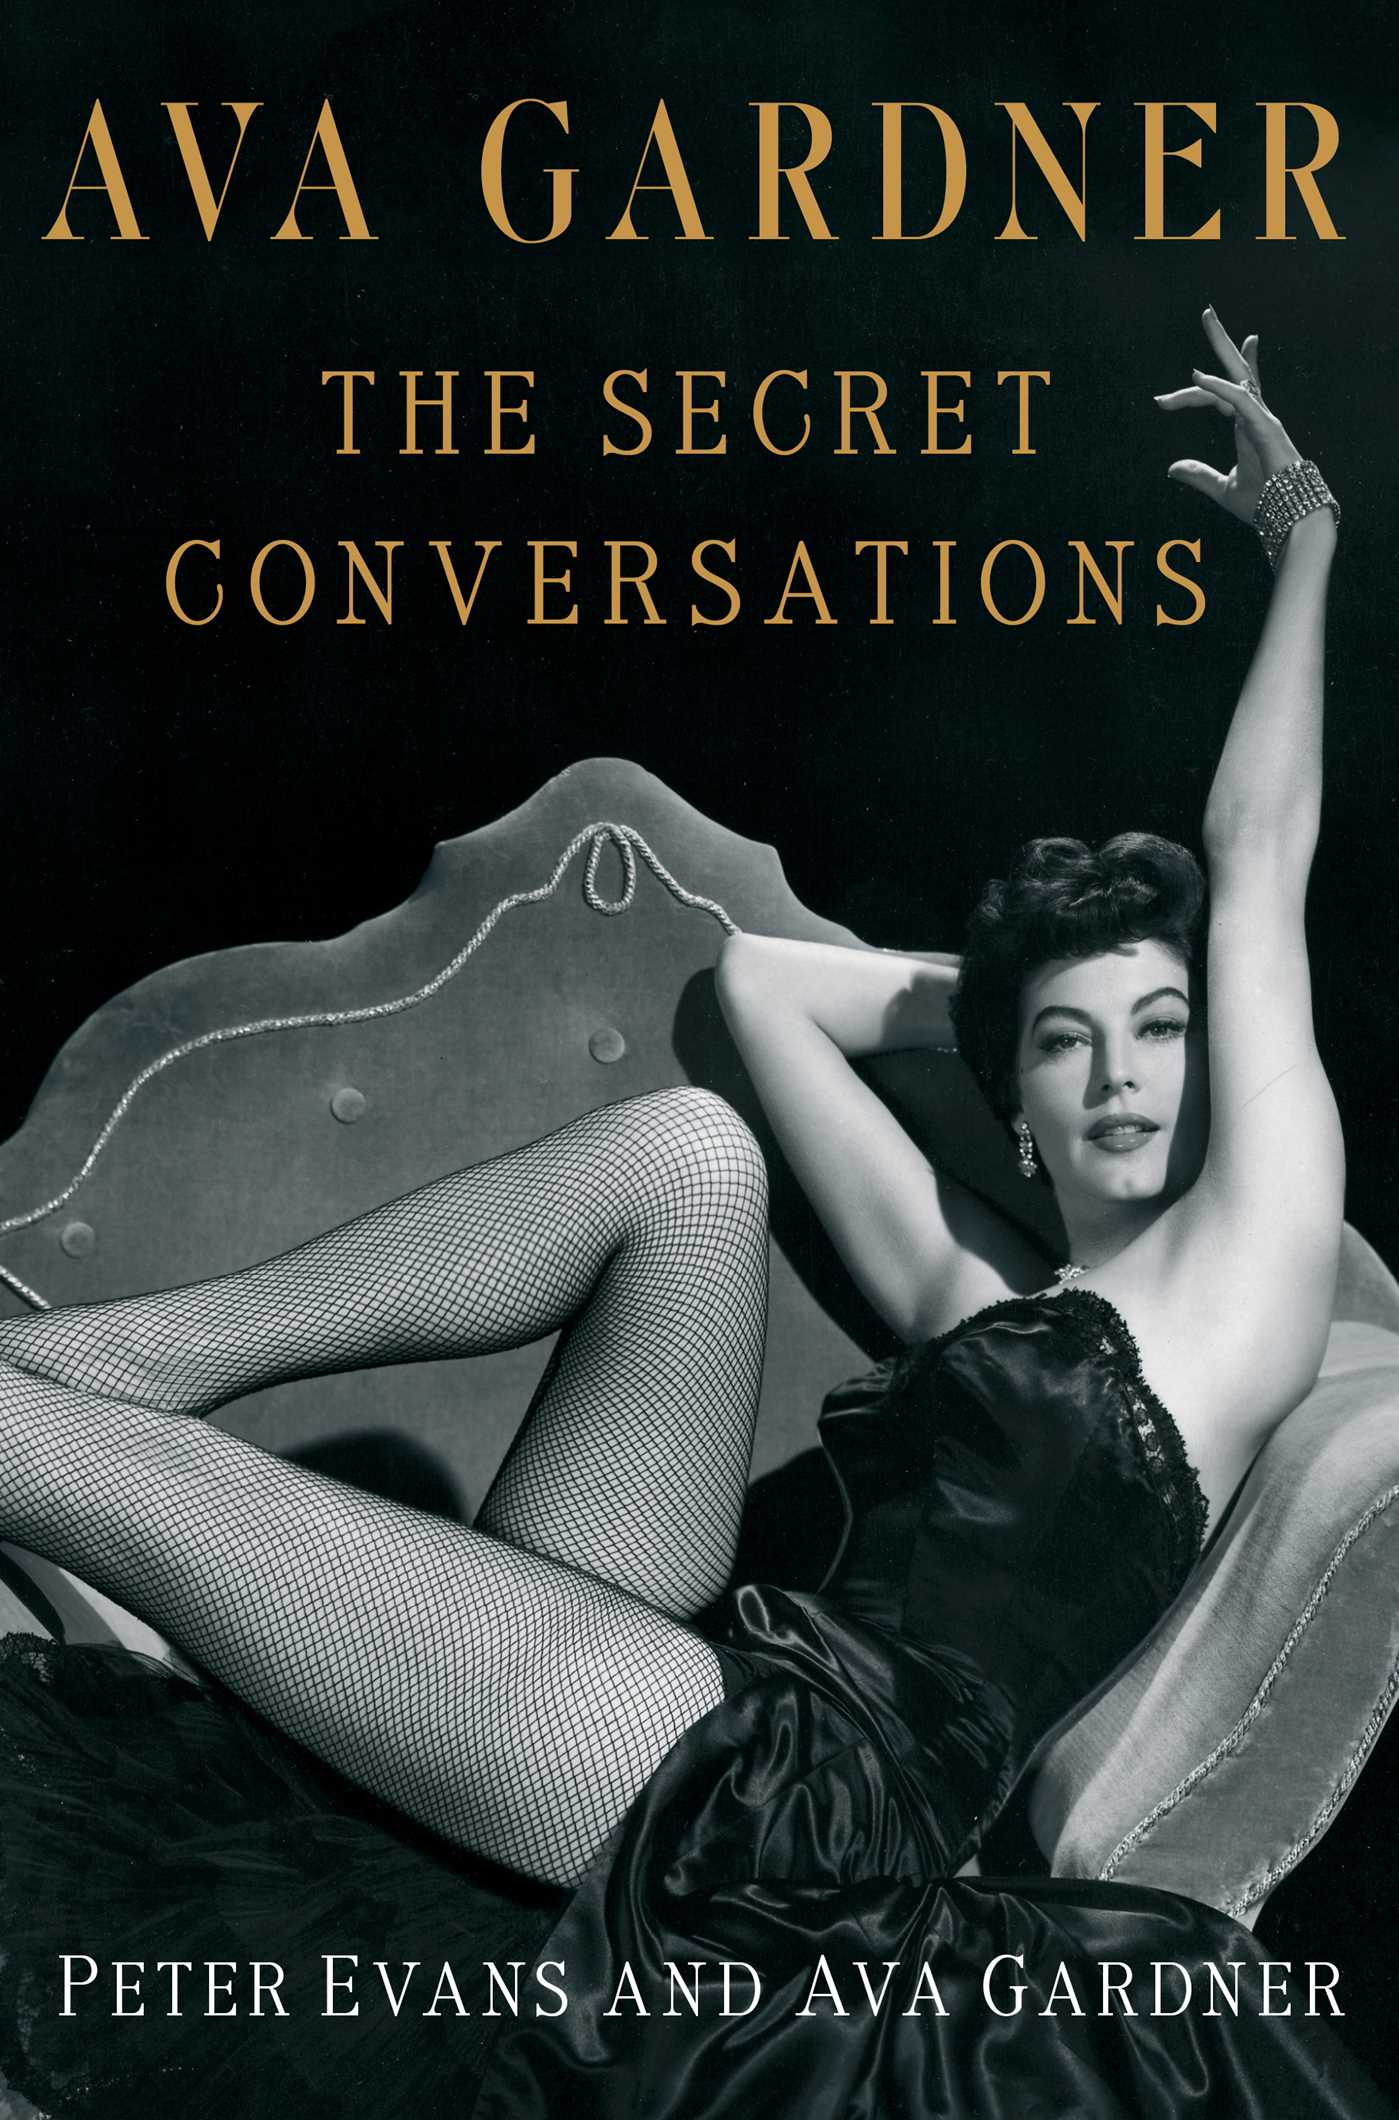 Ava gardner the secret conversations 9781451627718 hr